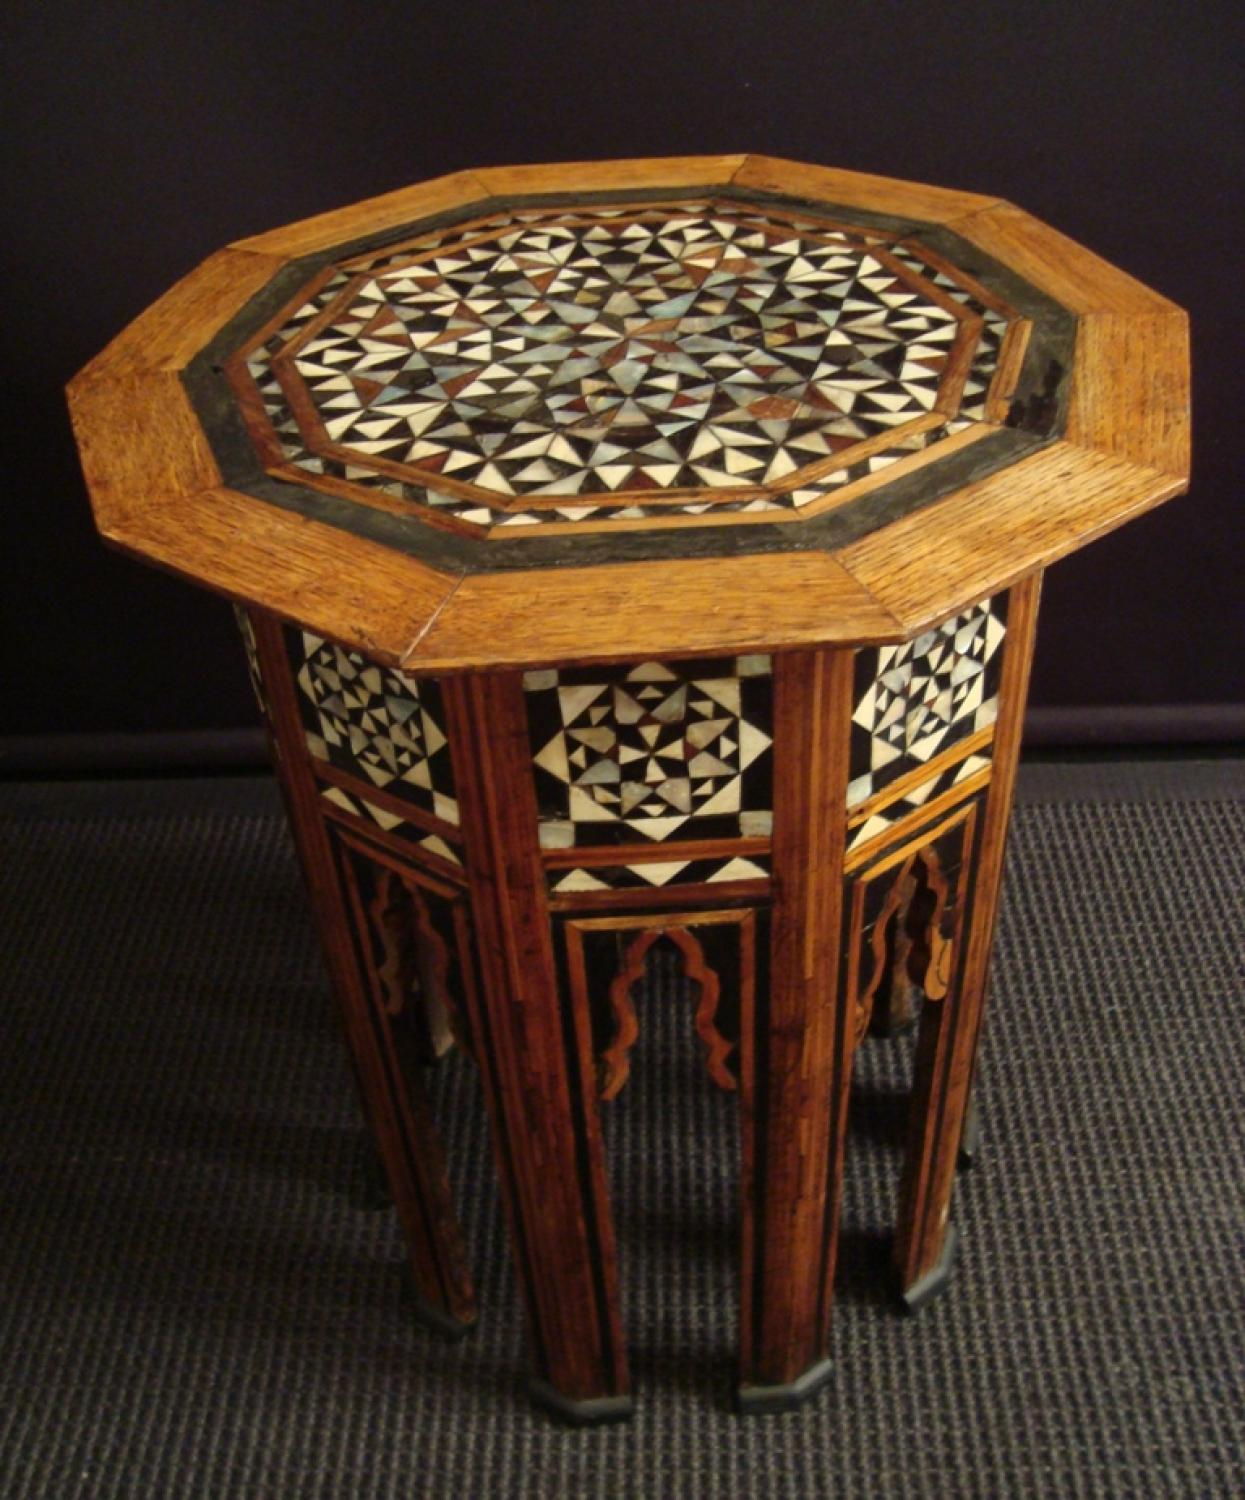 A mother of pearl and hardwood inlaid table